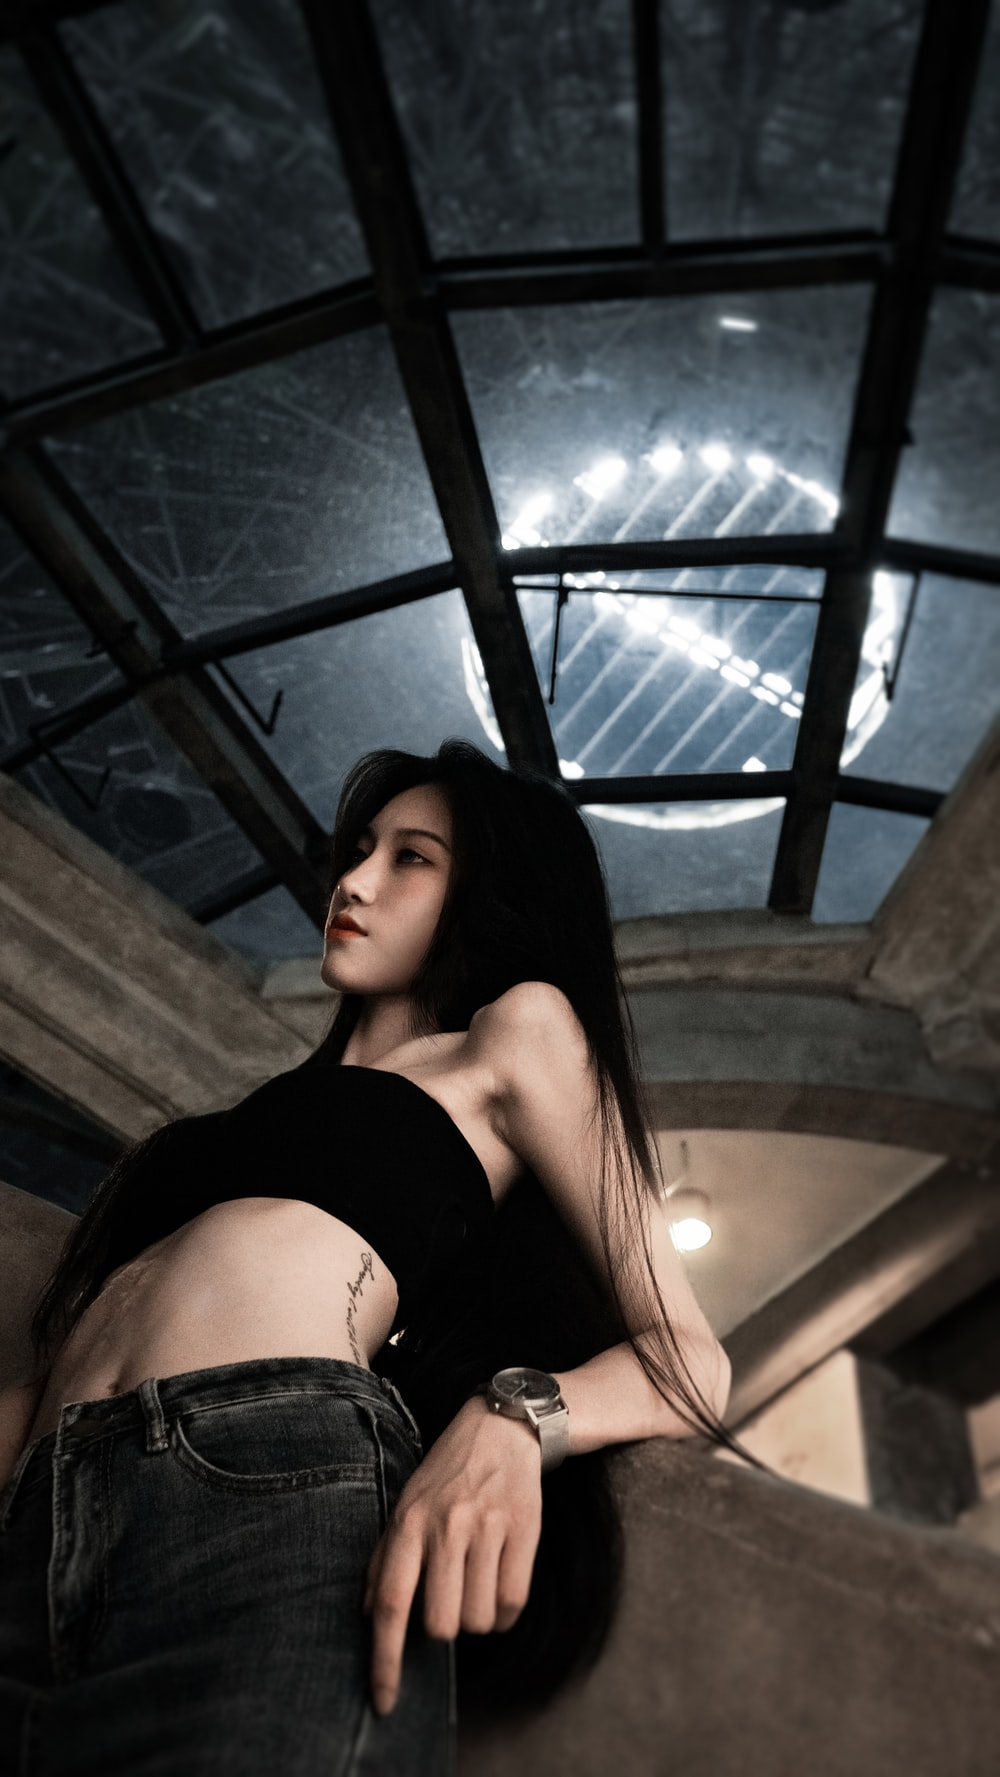 Best Chinese Girl Pictures [HD] | Download Free Images on